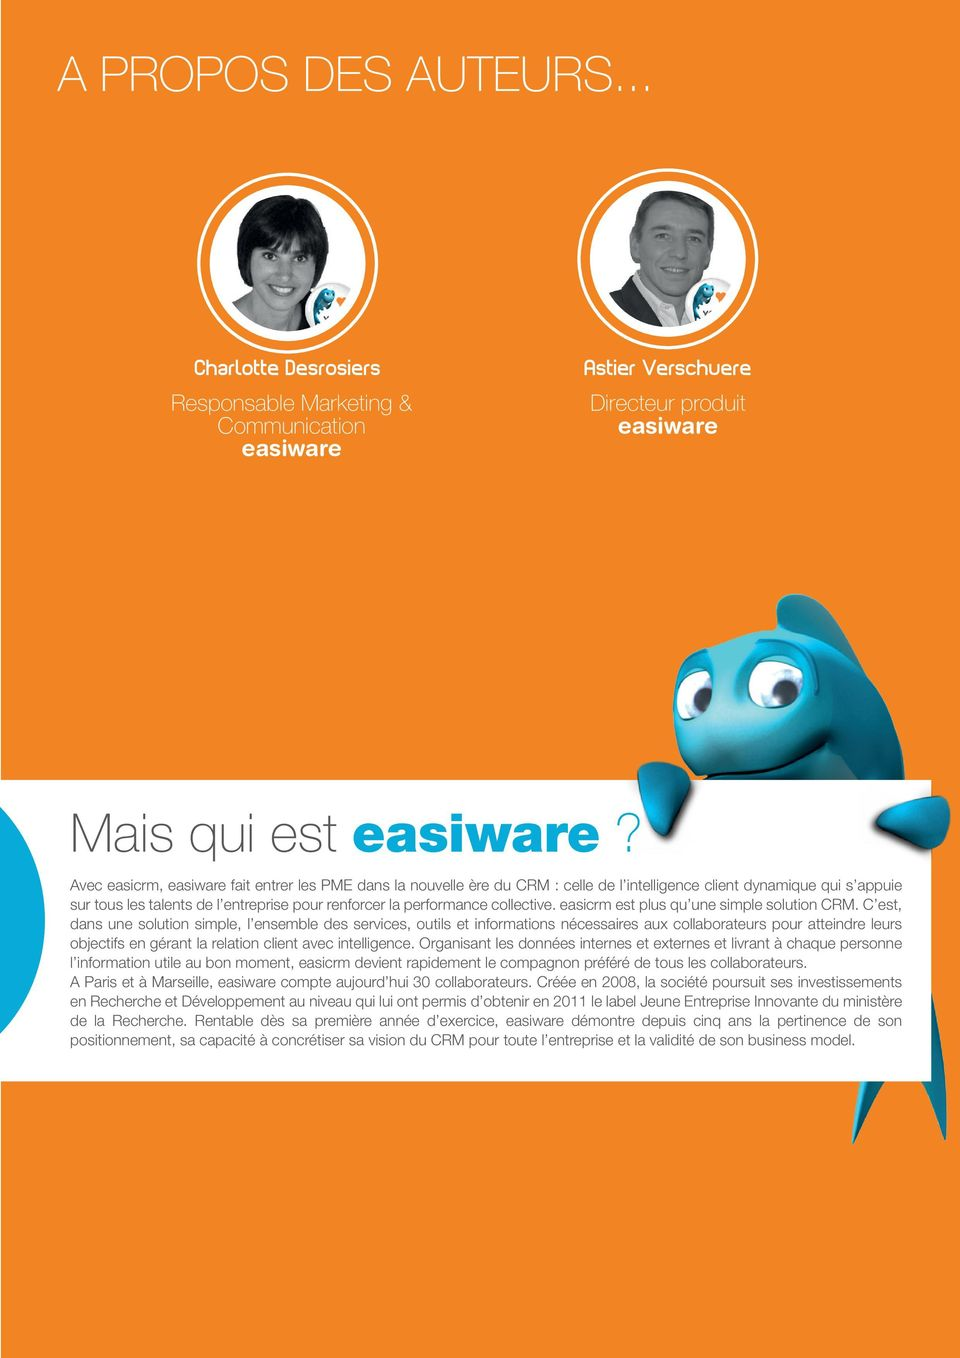 collective. easicrm est plus qu une simple solution CRM.